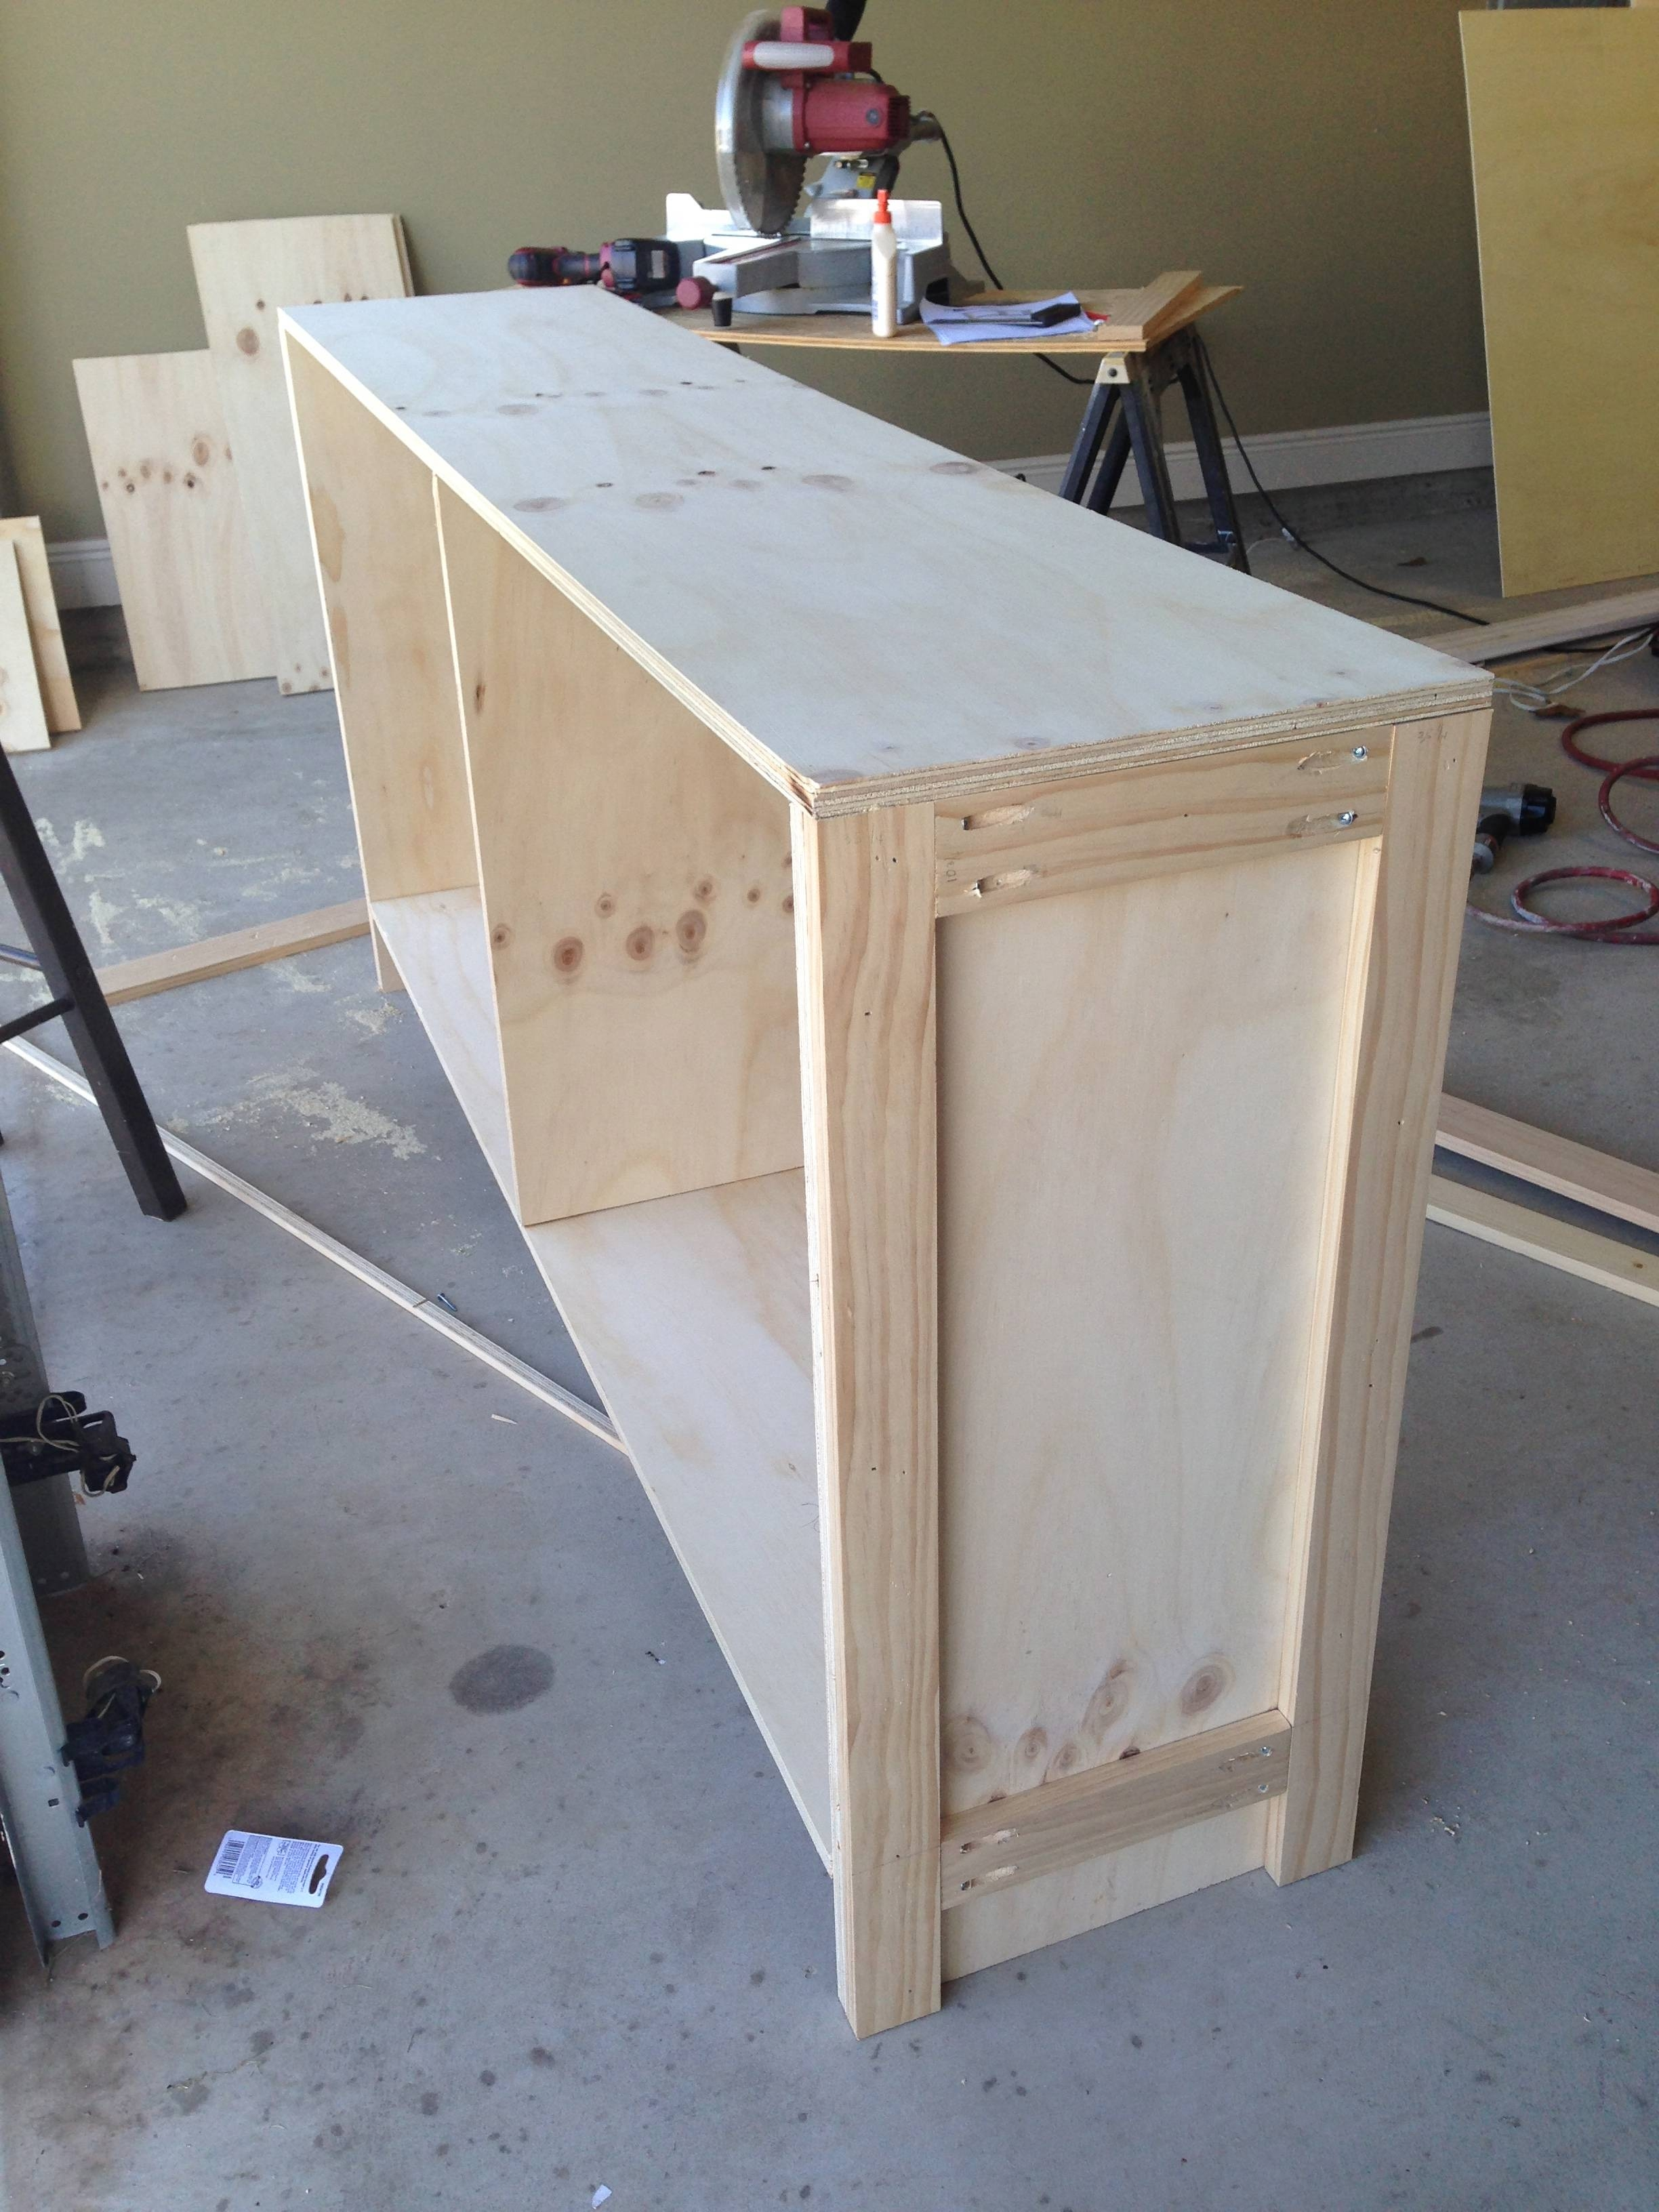 Diy Sideboard | The Sweet Life With Regard To Diy Sideboards (View 13 of 15)